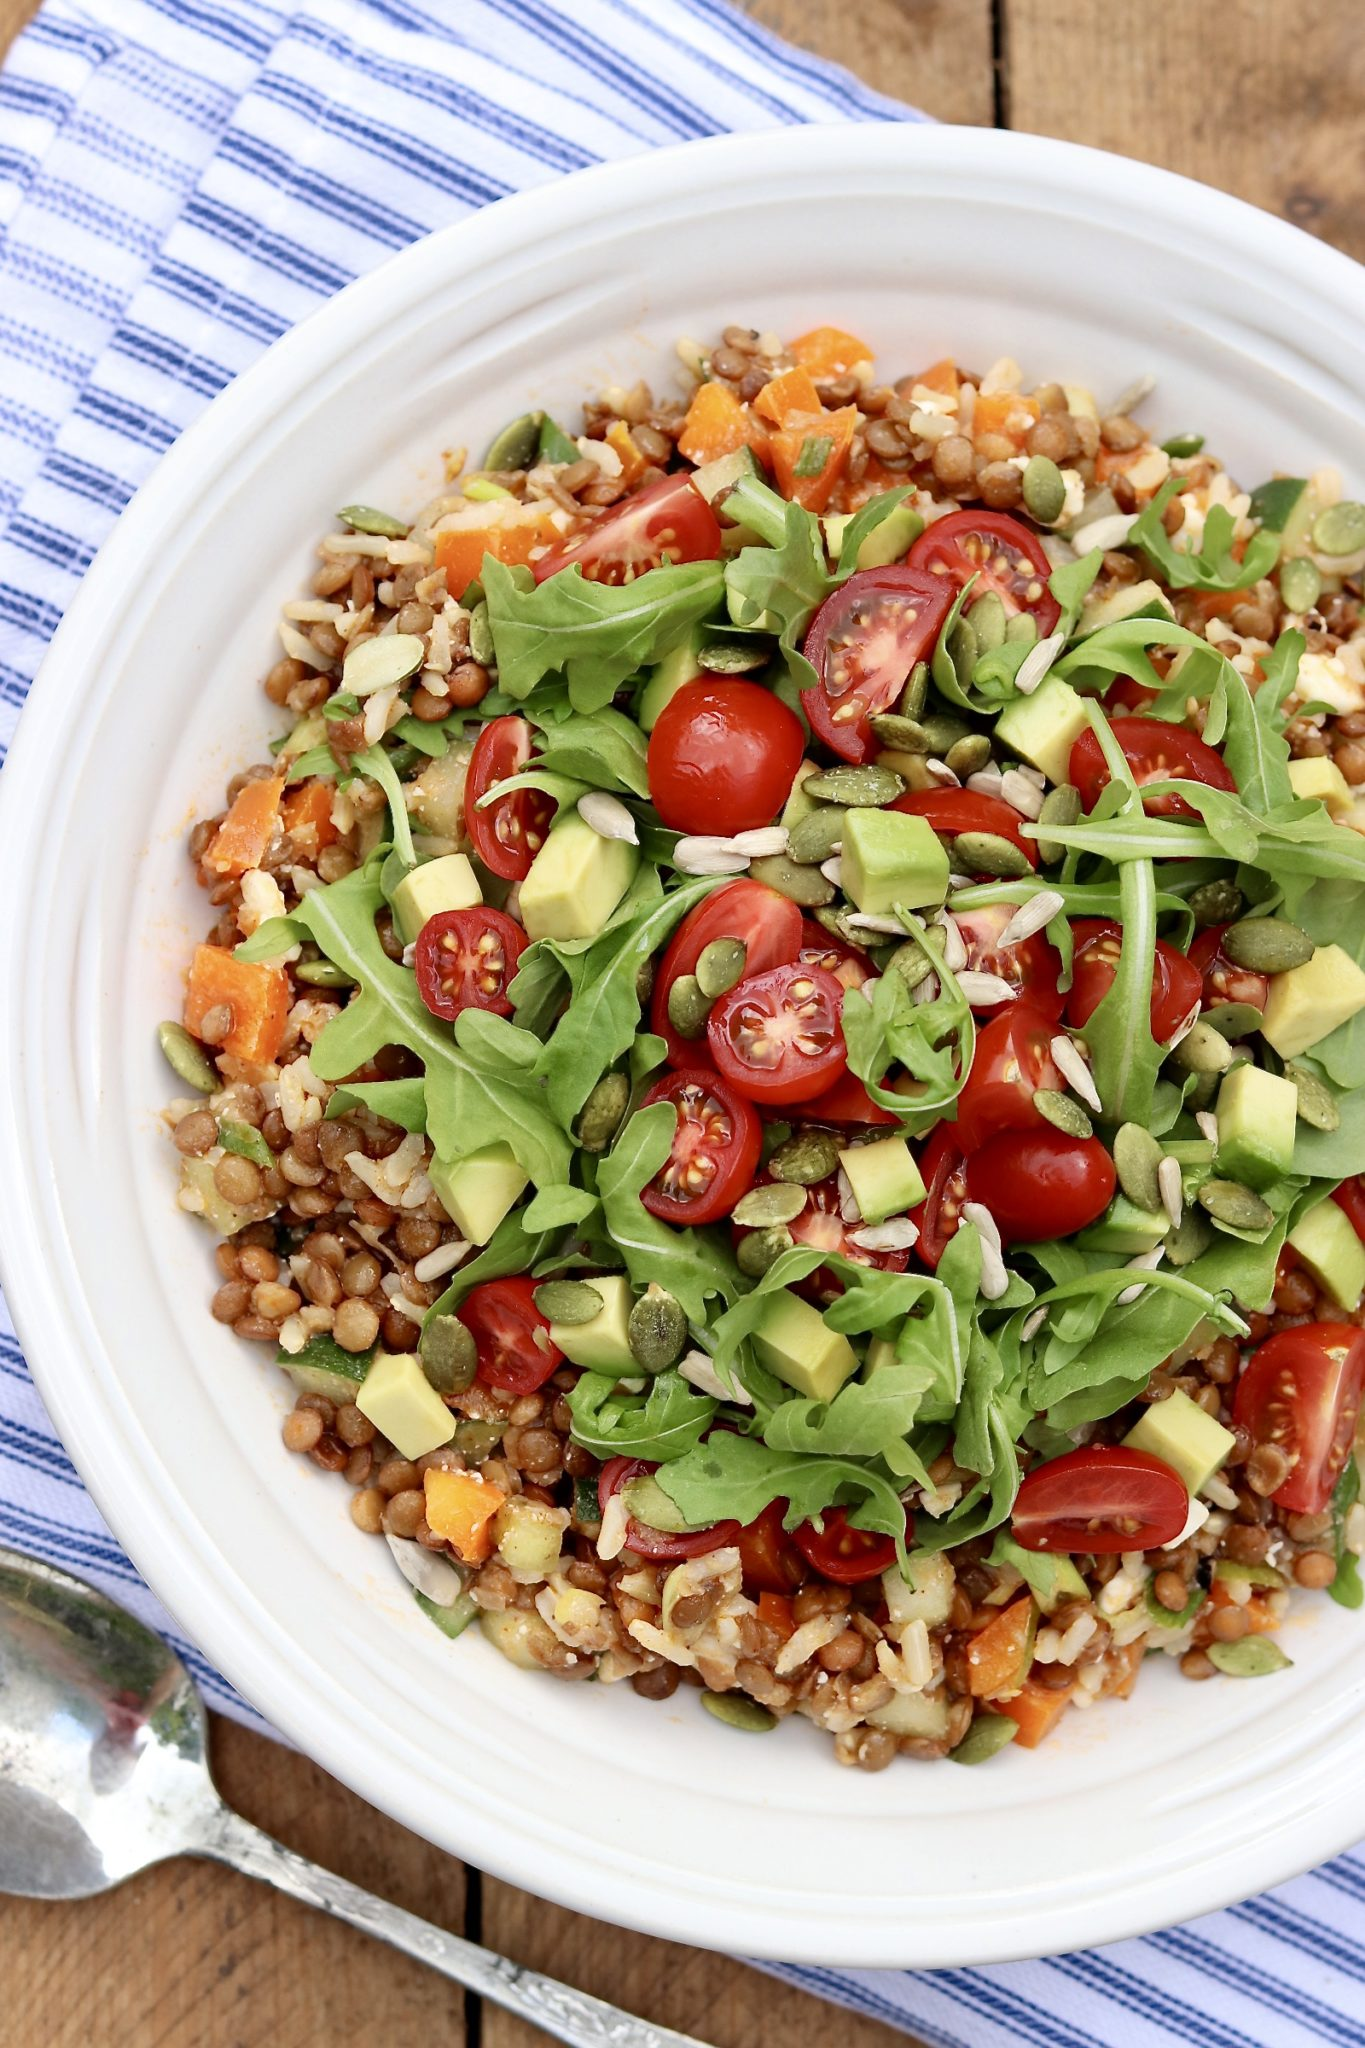 Light yet filling and endlessly adaptable, this protein-rich lentil salad will delight plant-based eaters and meat lovers alike!